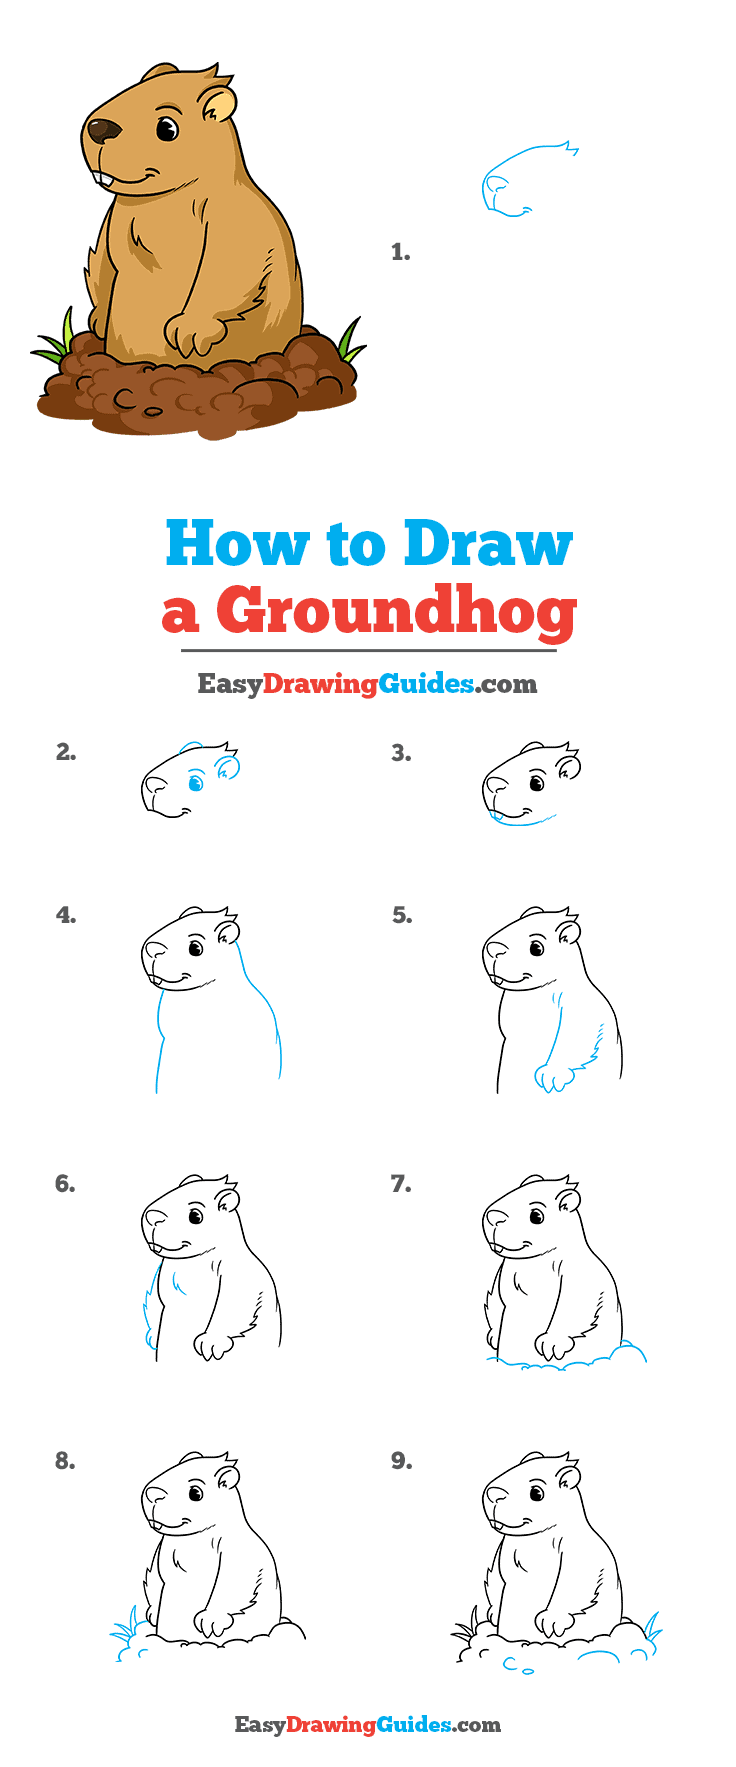 How to Draw a Groundhog Step by Step Tutorial Image